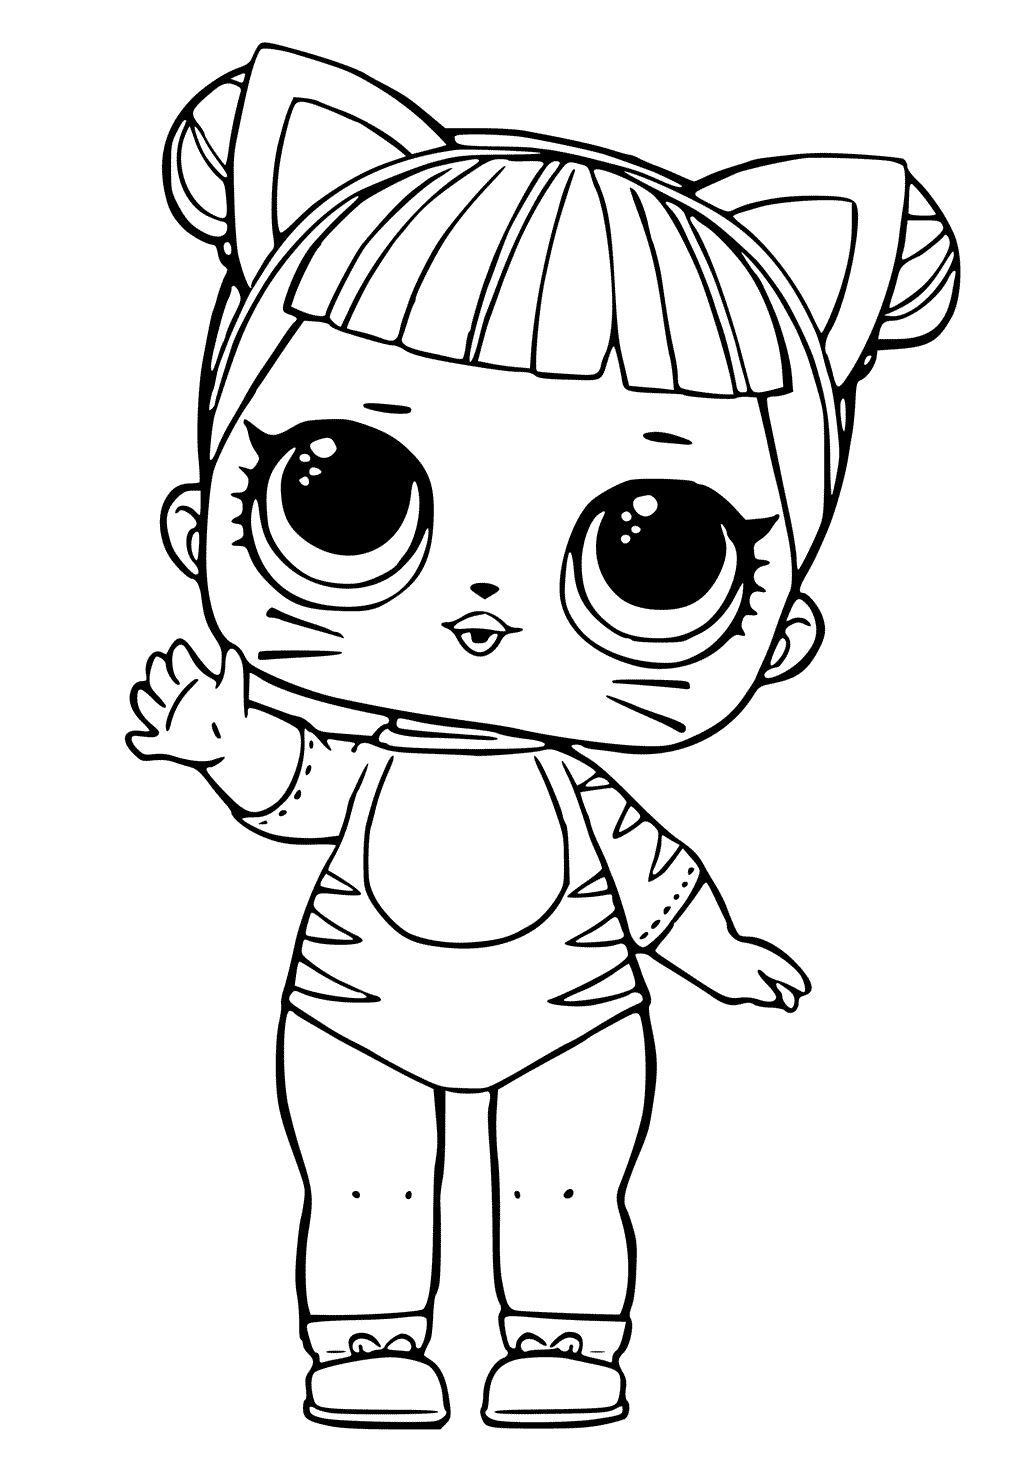 40 Free Printable Lol Surprise Dolls Coloring Pages